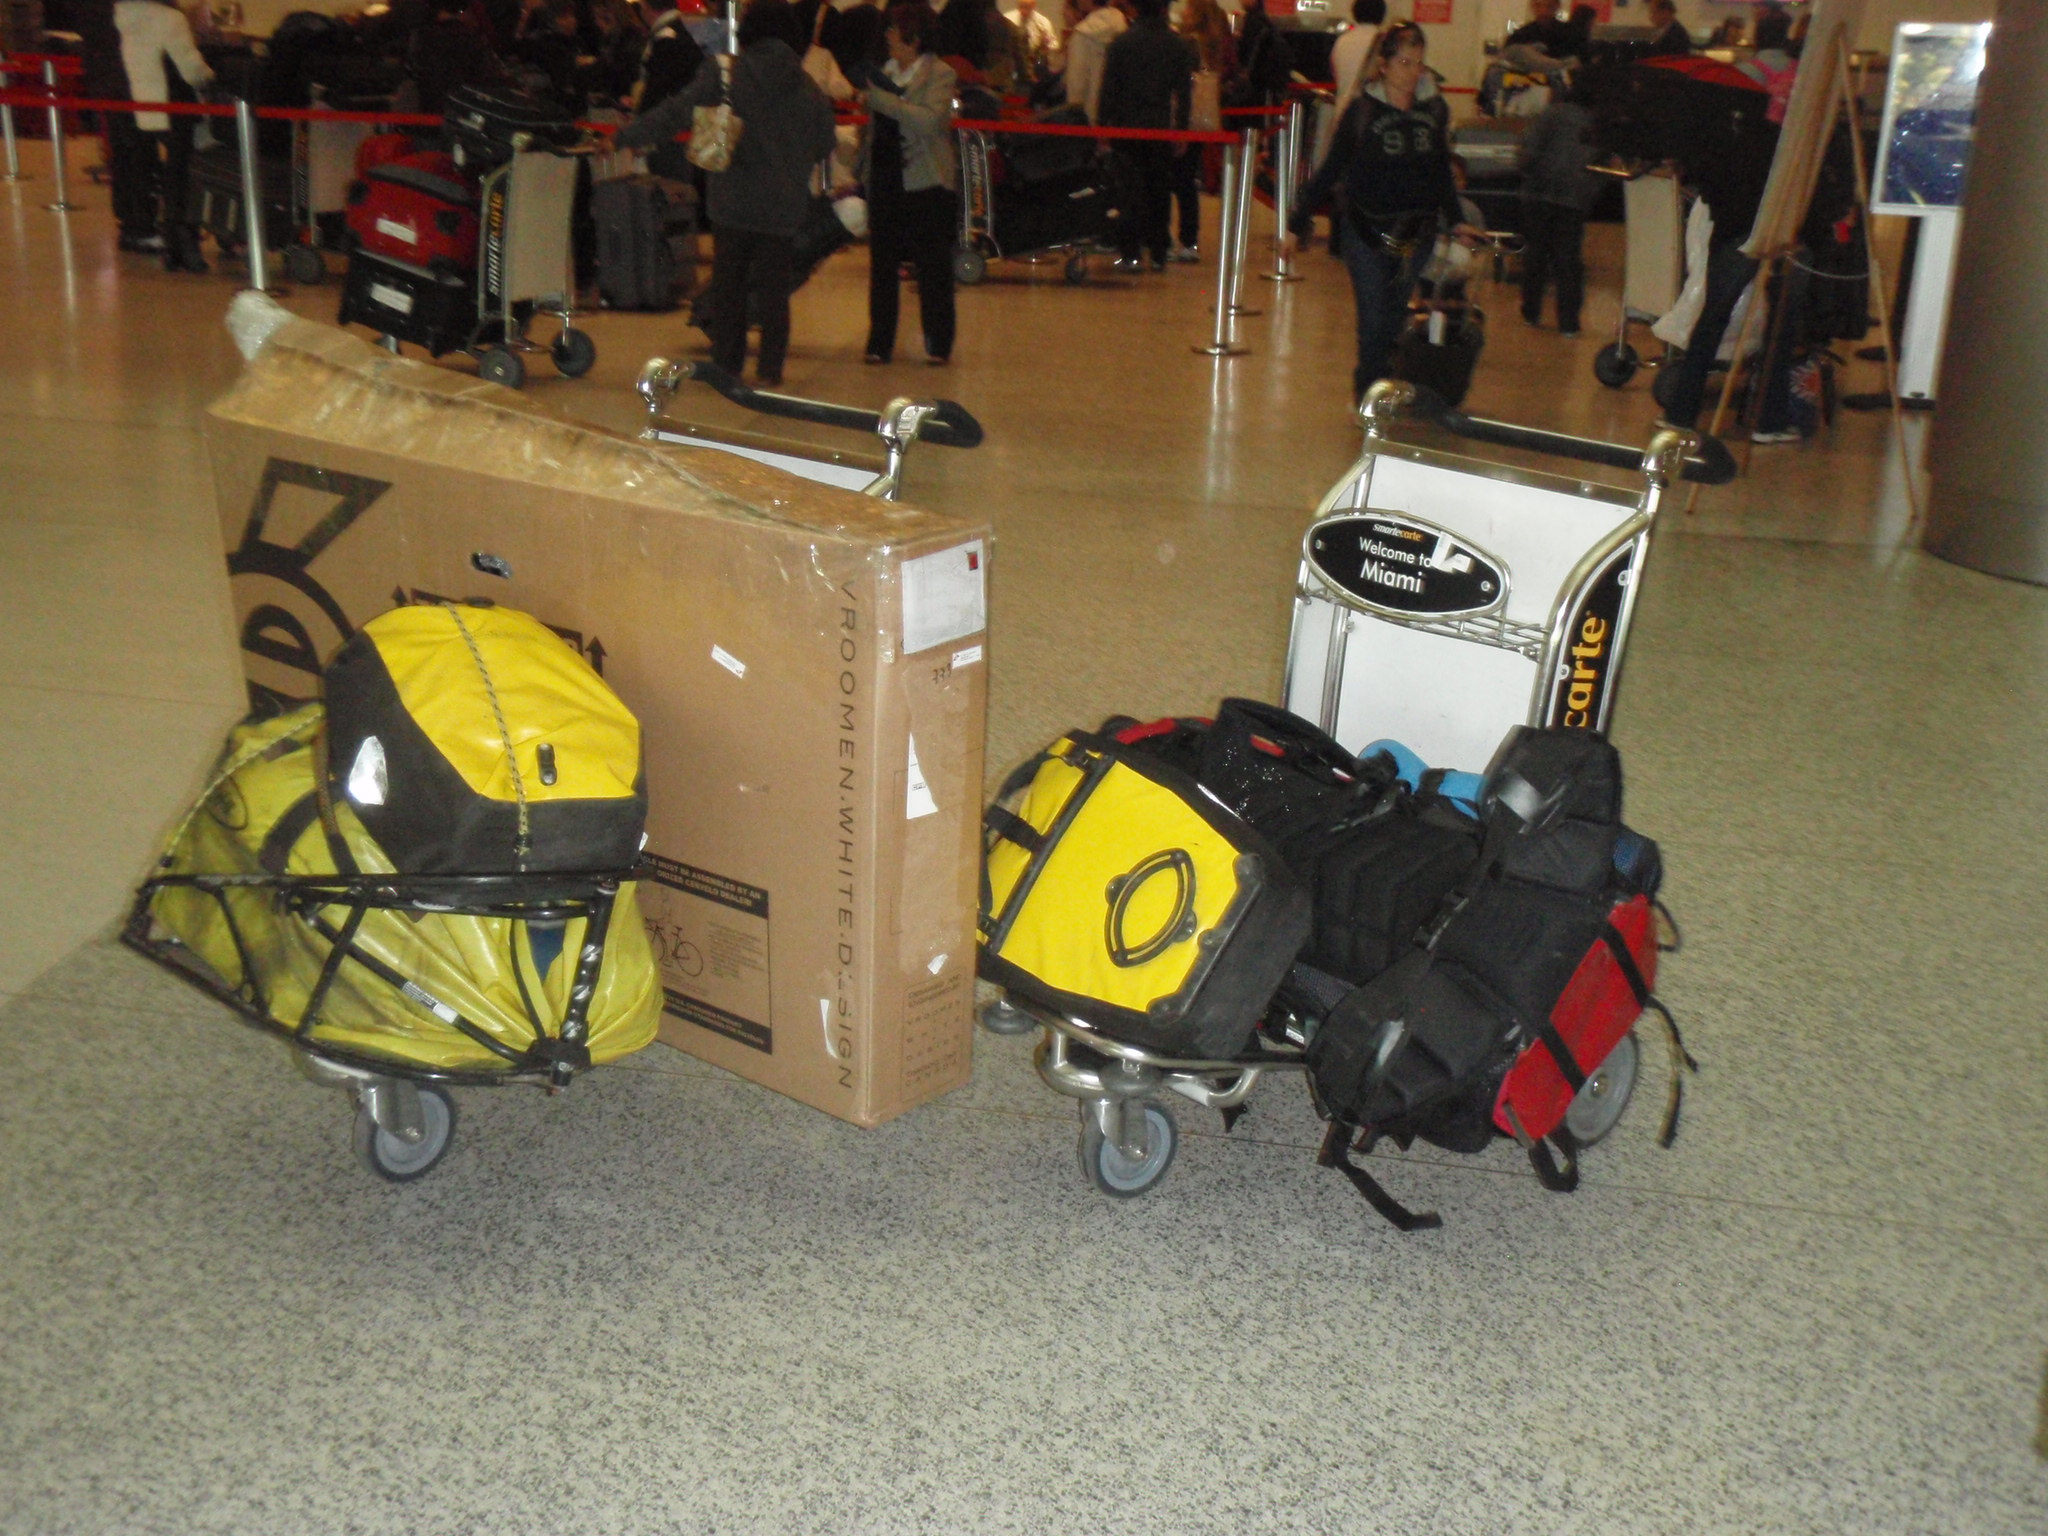 3 large bags checked in and two carry-on bags (total around 200 pounds)